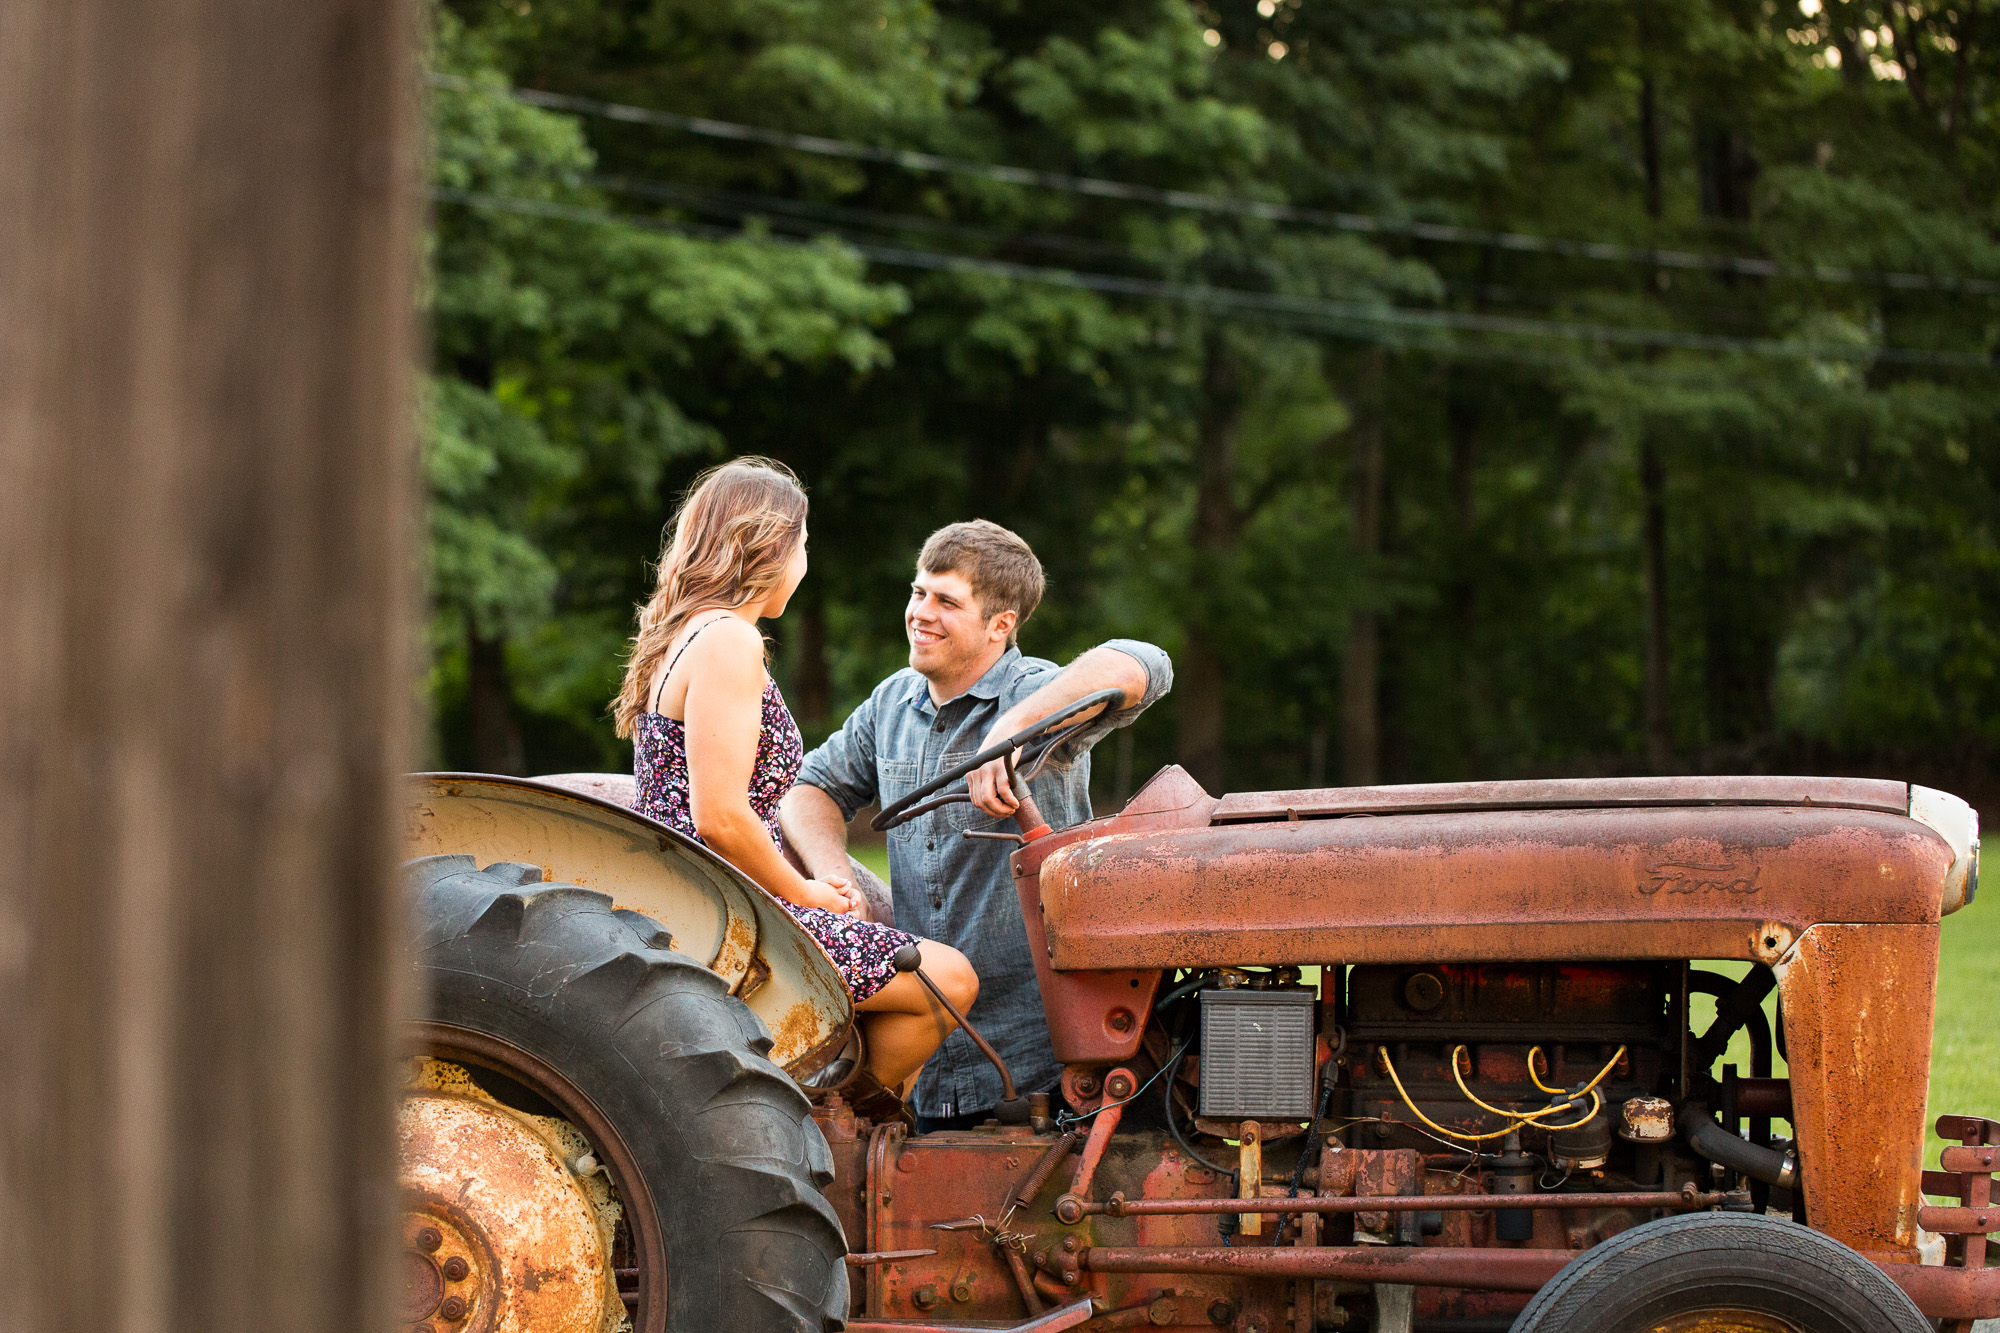 engagement session by a tractor at Bliss Farm